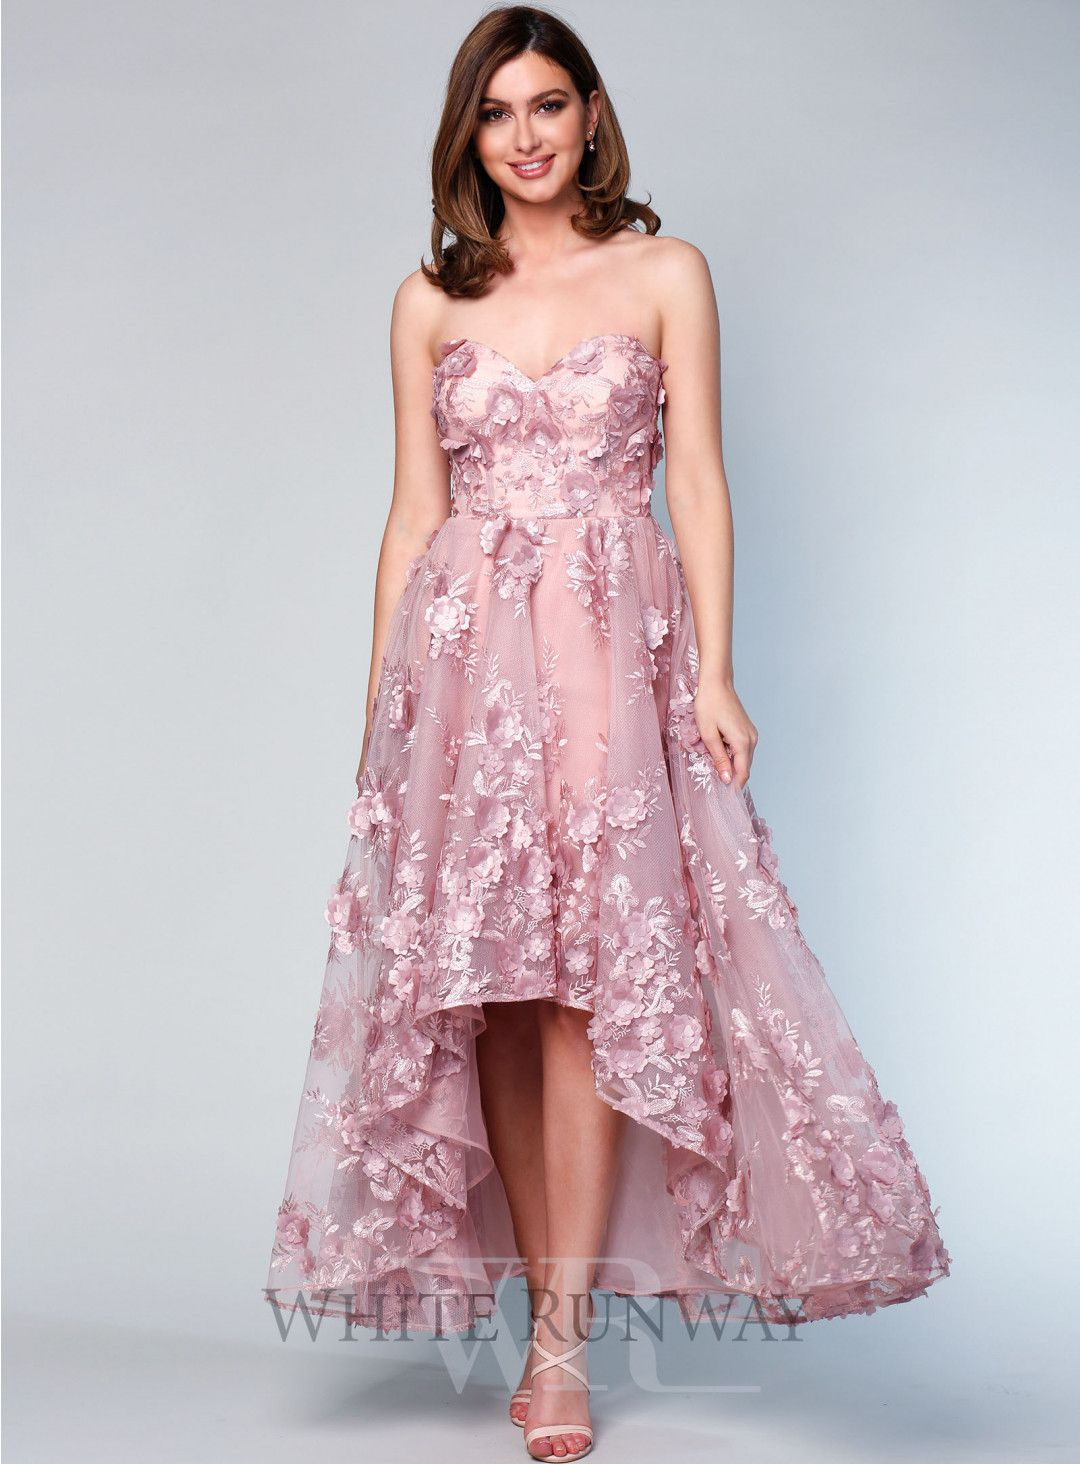 Rosetta Lace Gown By Grace & Hart $500.00 Buy Now, Pay Later zipPay ...